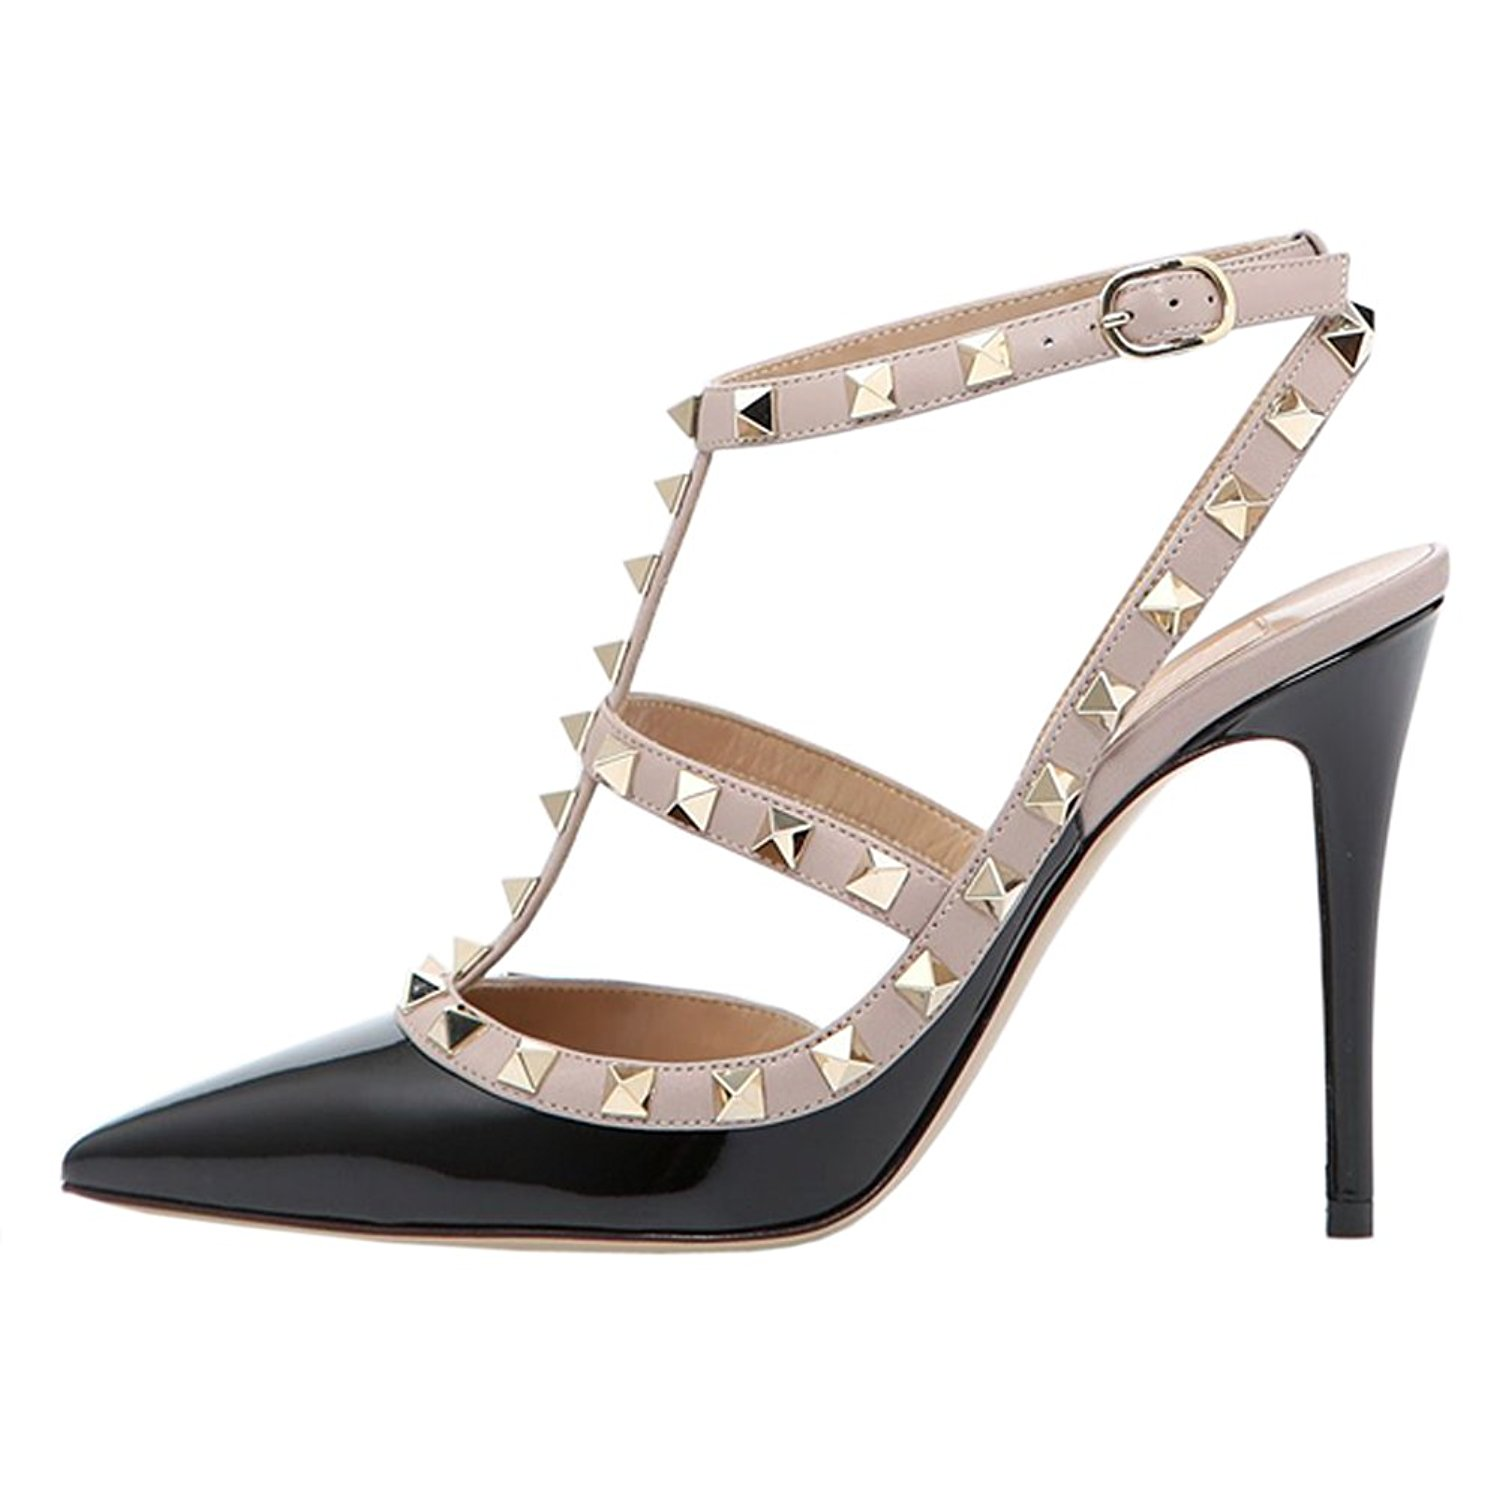 92bcb389c4 Get Quotations · June in Love Womens Heels Strappy Sandals Rivets Studs  Middle Thin Heels Sexy Sandals